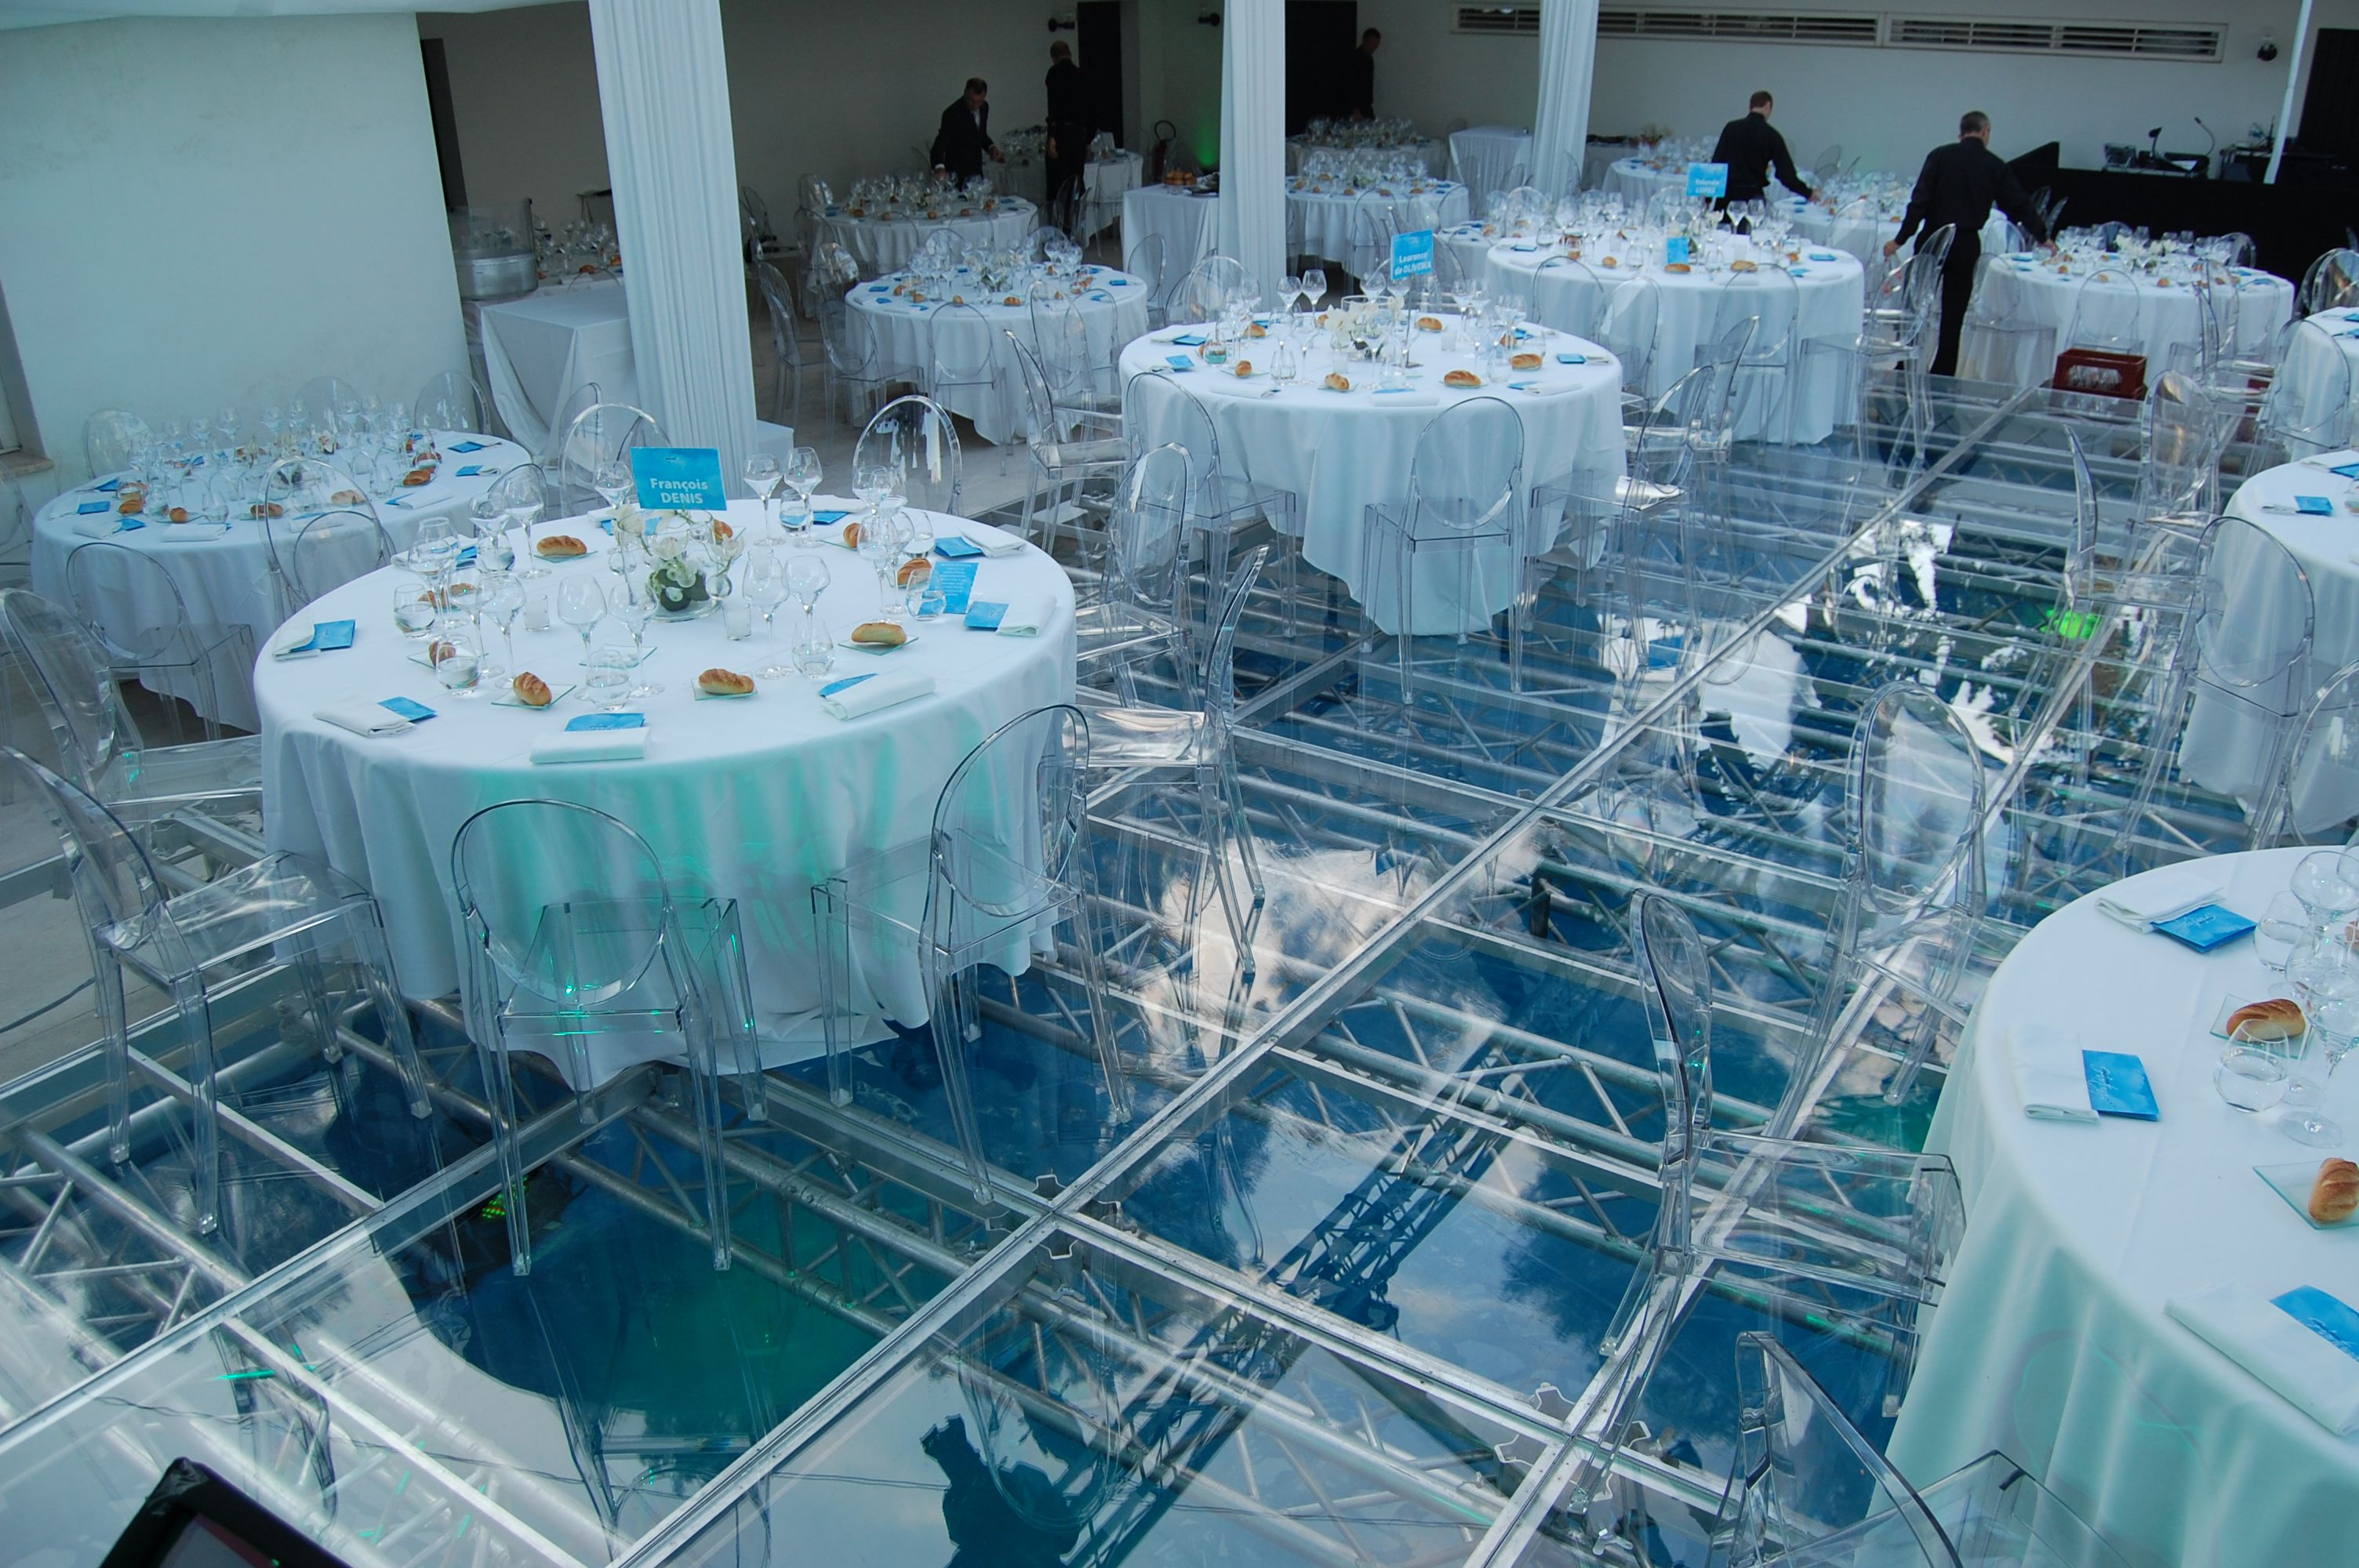 Is a swimming pool or a dance floor with adams adams for 1234 lets on the dance floor